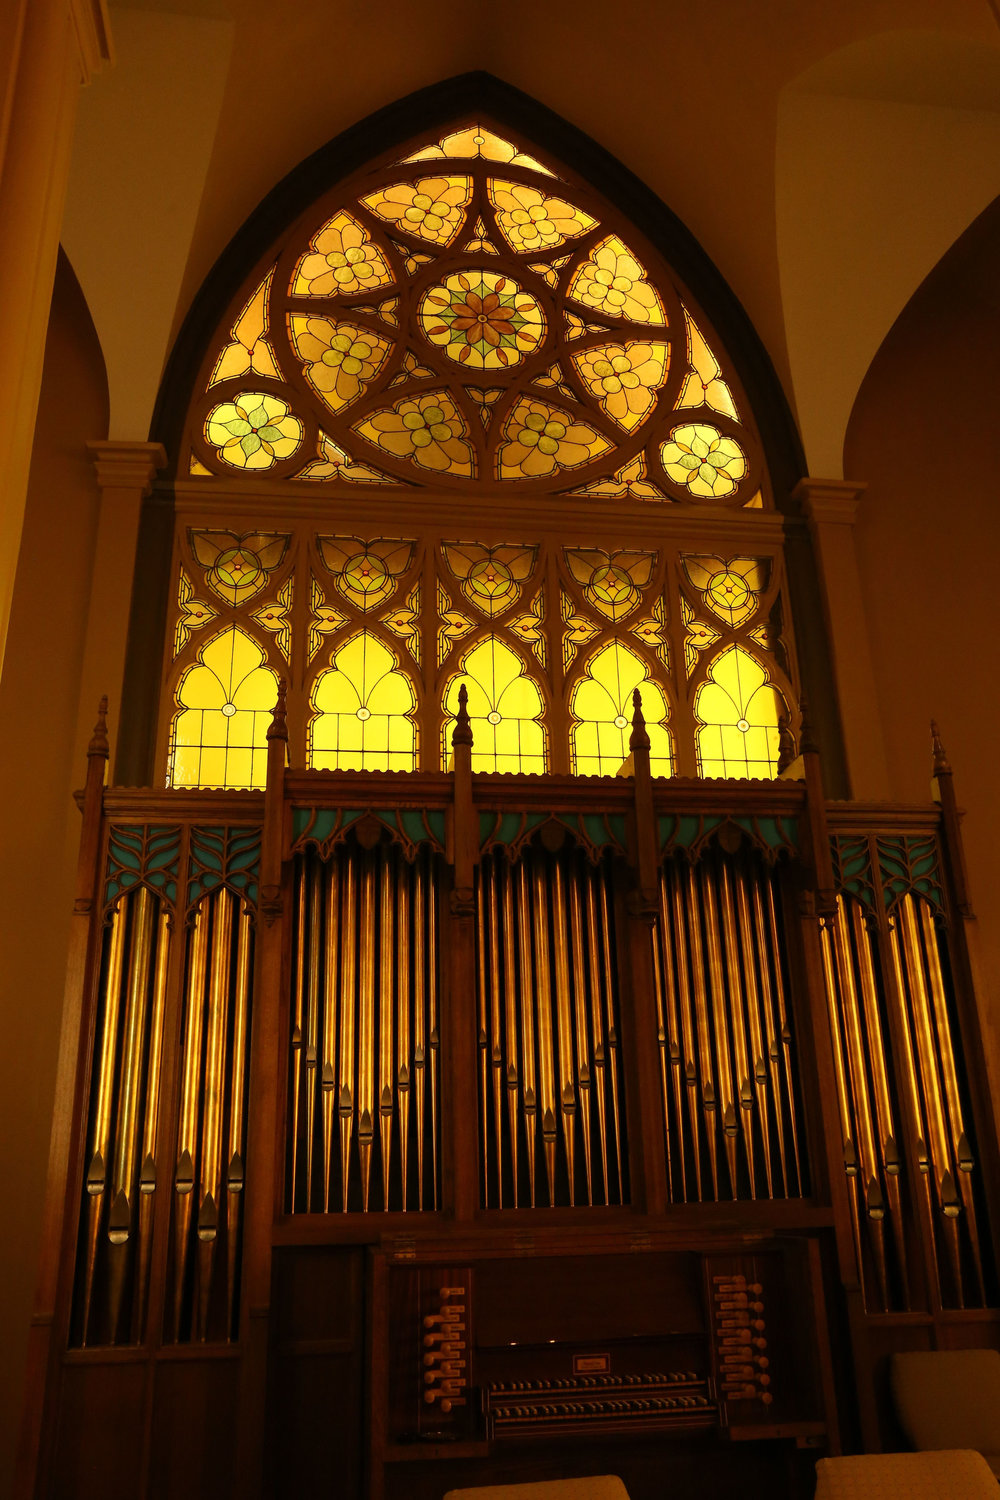 The stained glass at the front of the sanctuary above the organ.